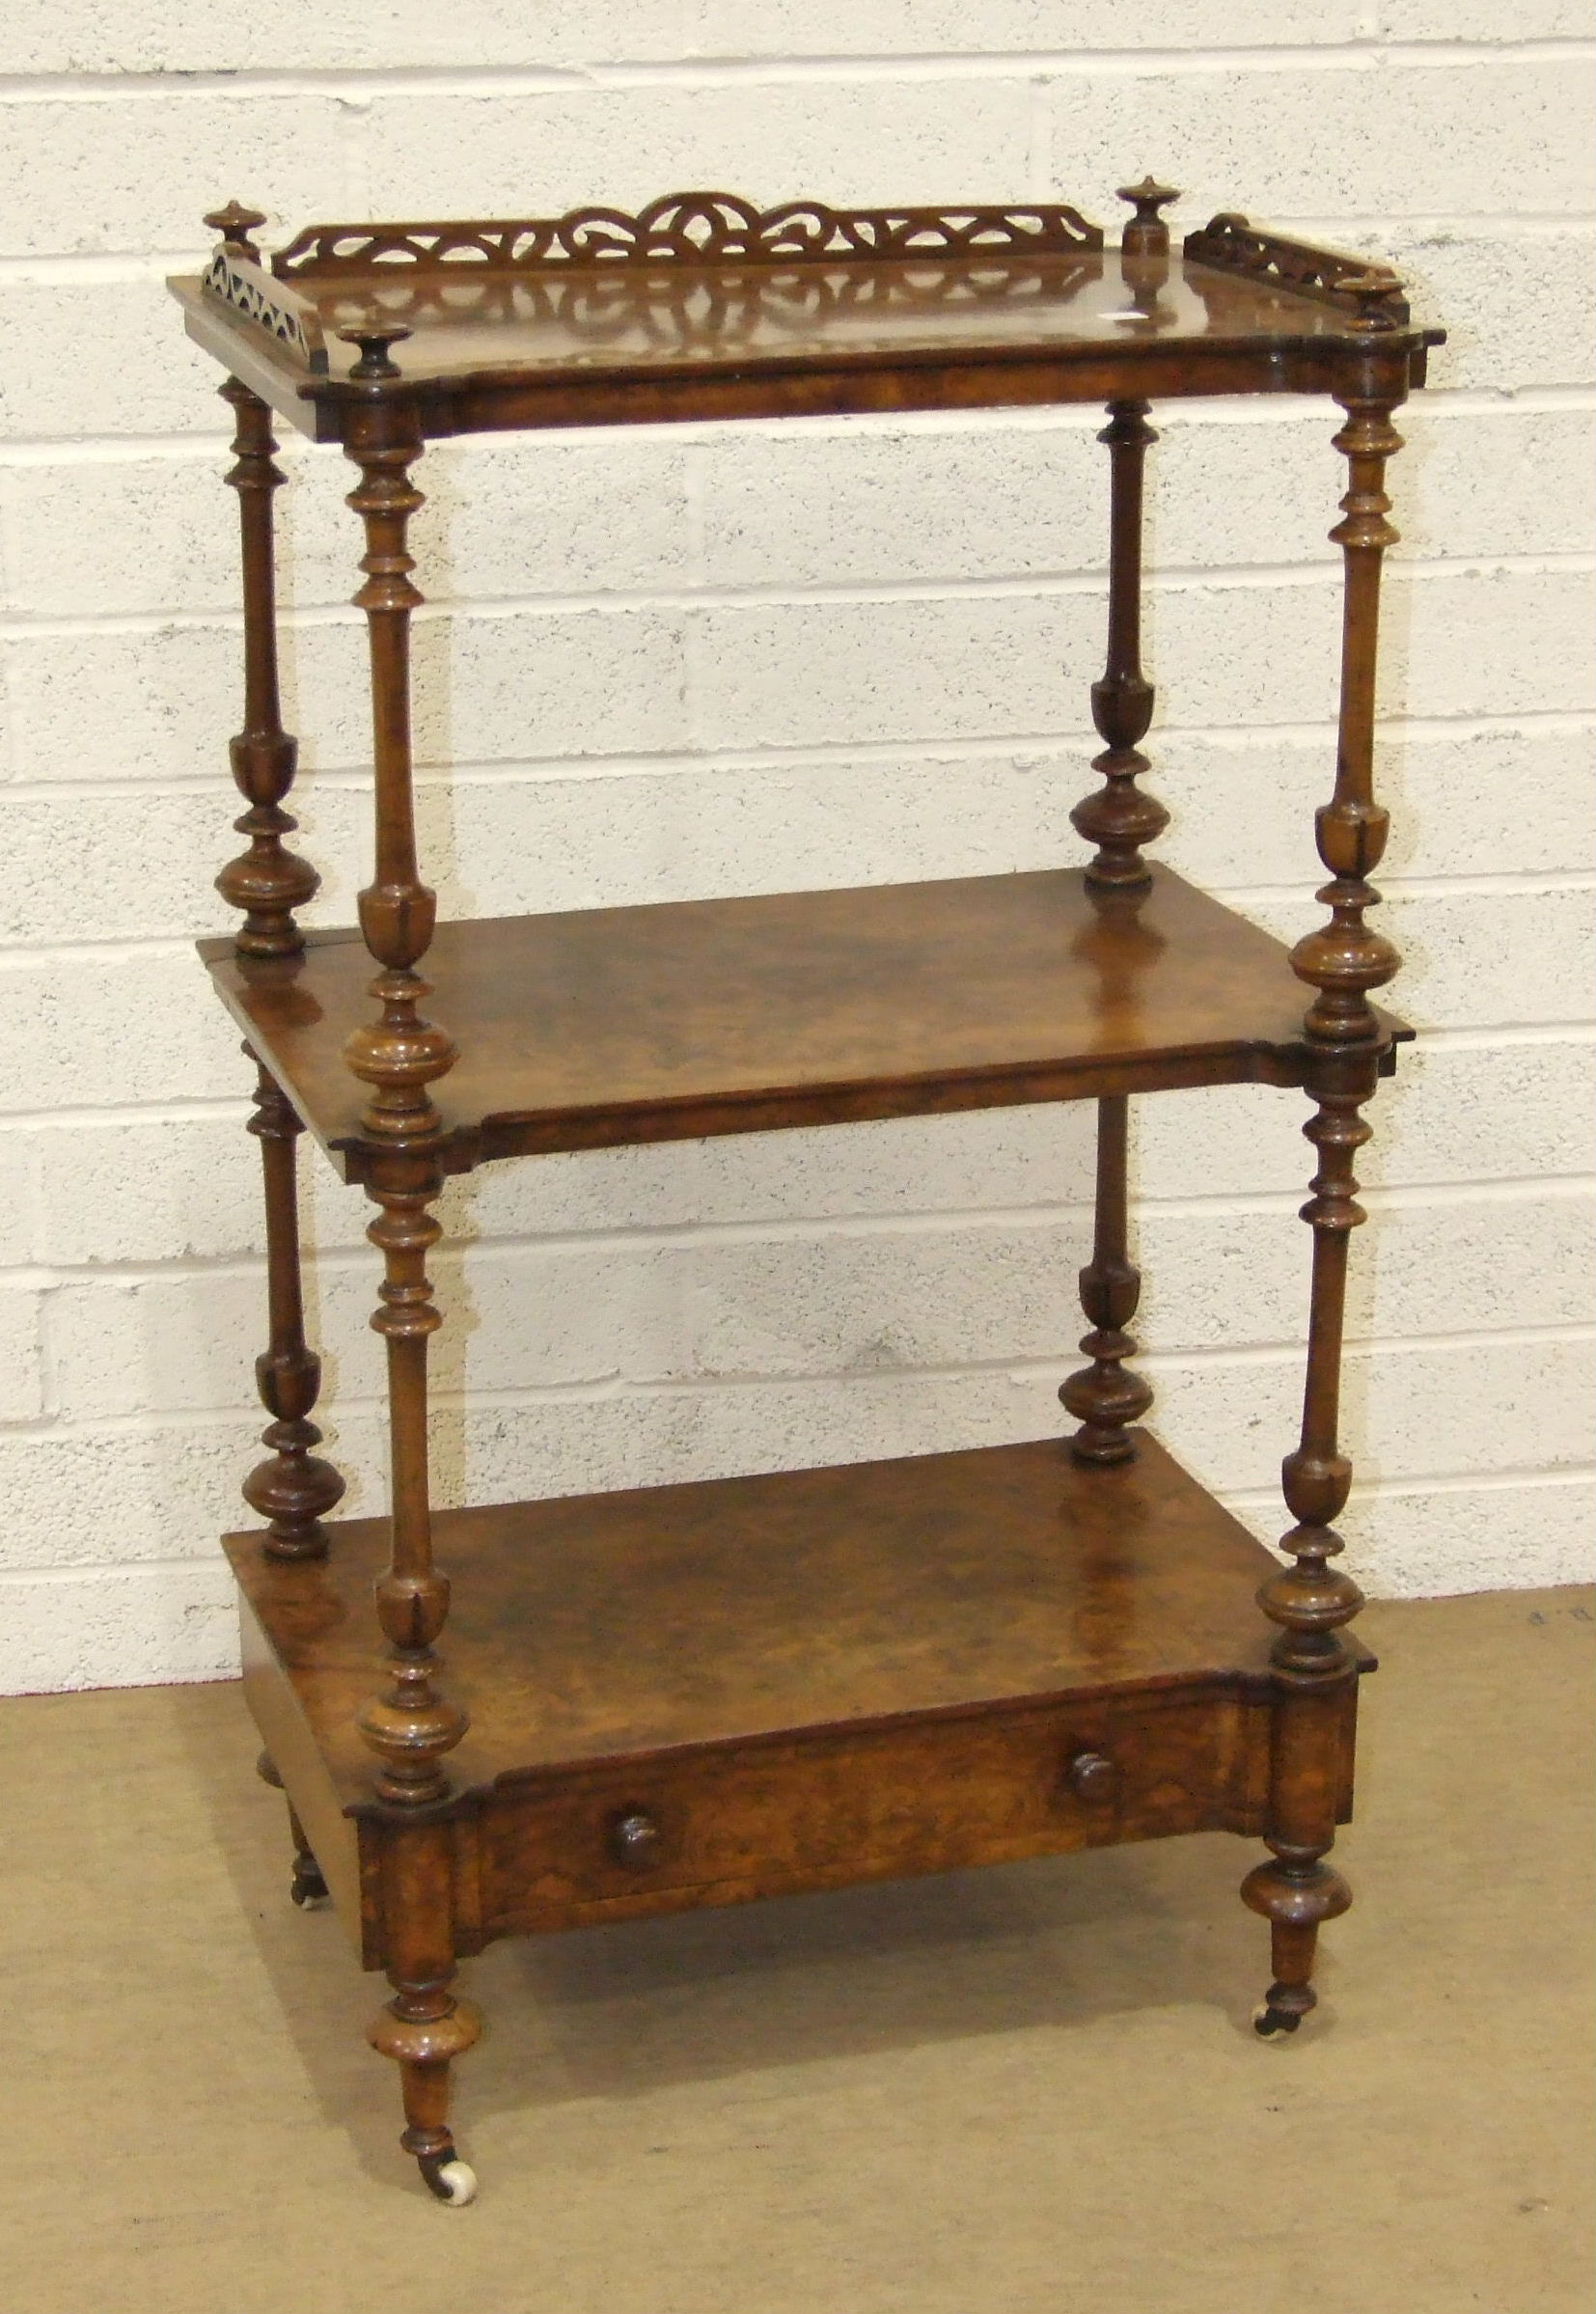 Lot 55 - A Victorian burr walnut three-tier whatnot, the galleried top and tiers separated by turned columns,